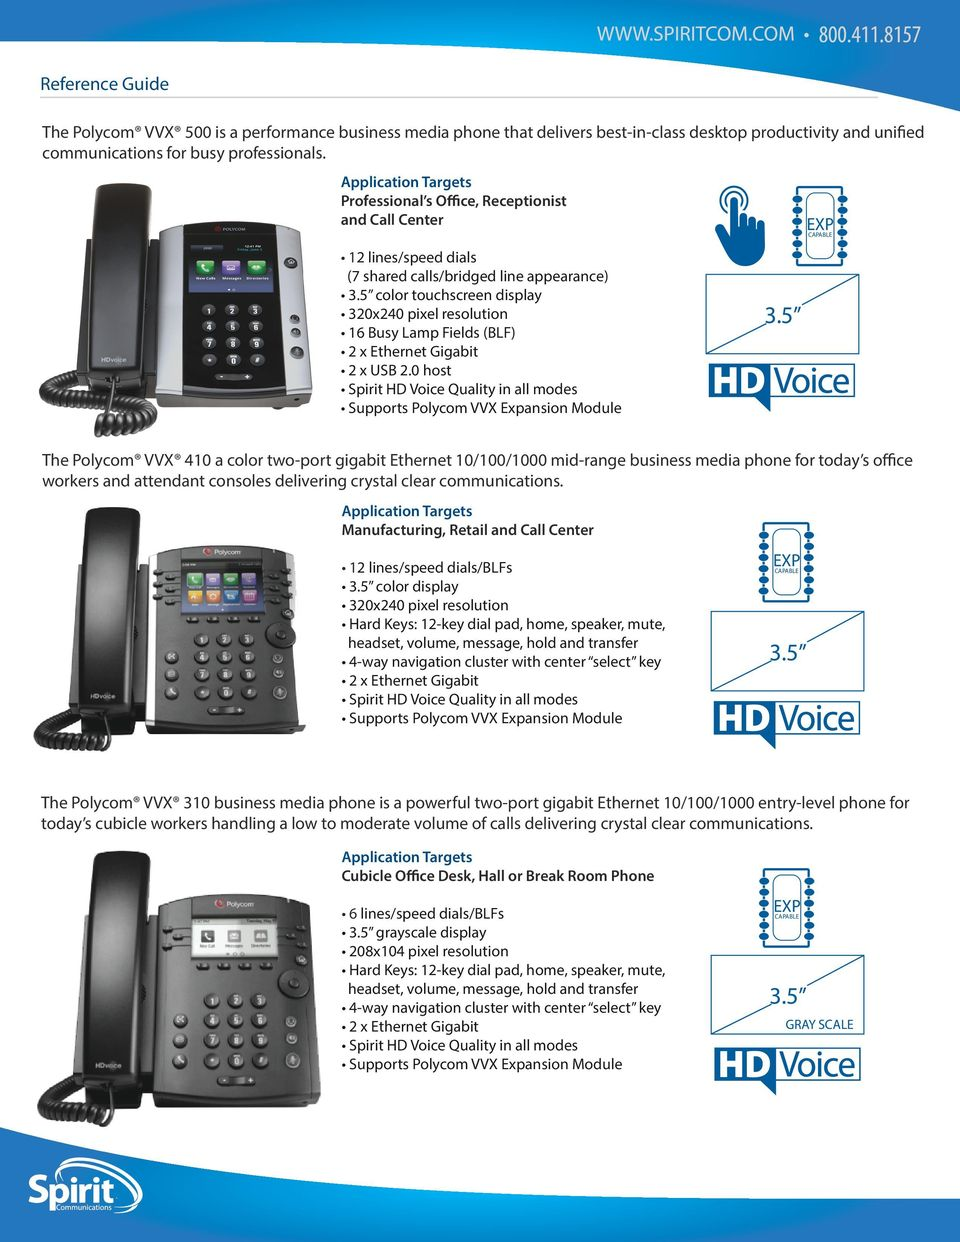 Polycom VVX 410 a color two-port gigabit Ethernet 10/100/1000 mid-range business media phone for today s office workers and attendant consoles delivering crystal clear communications.